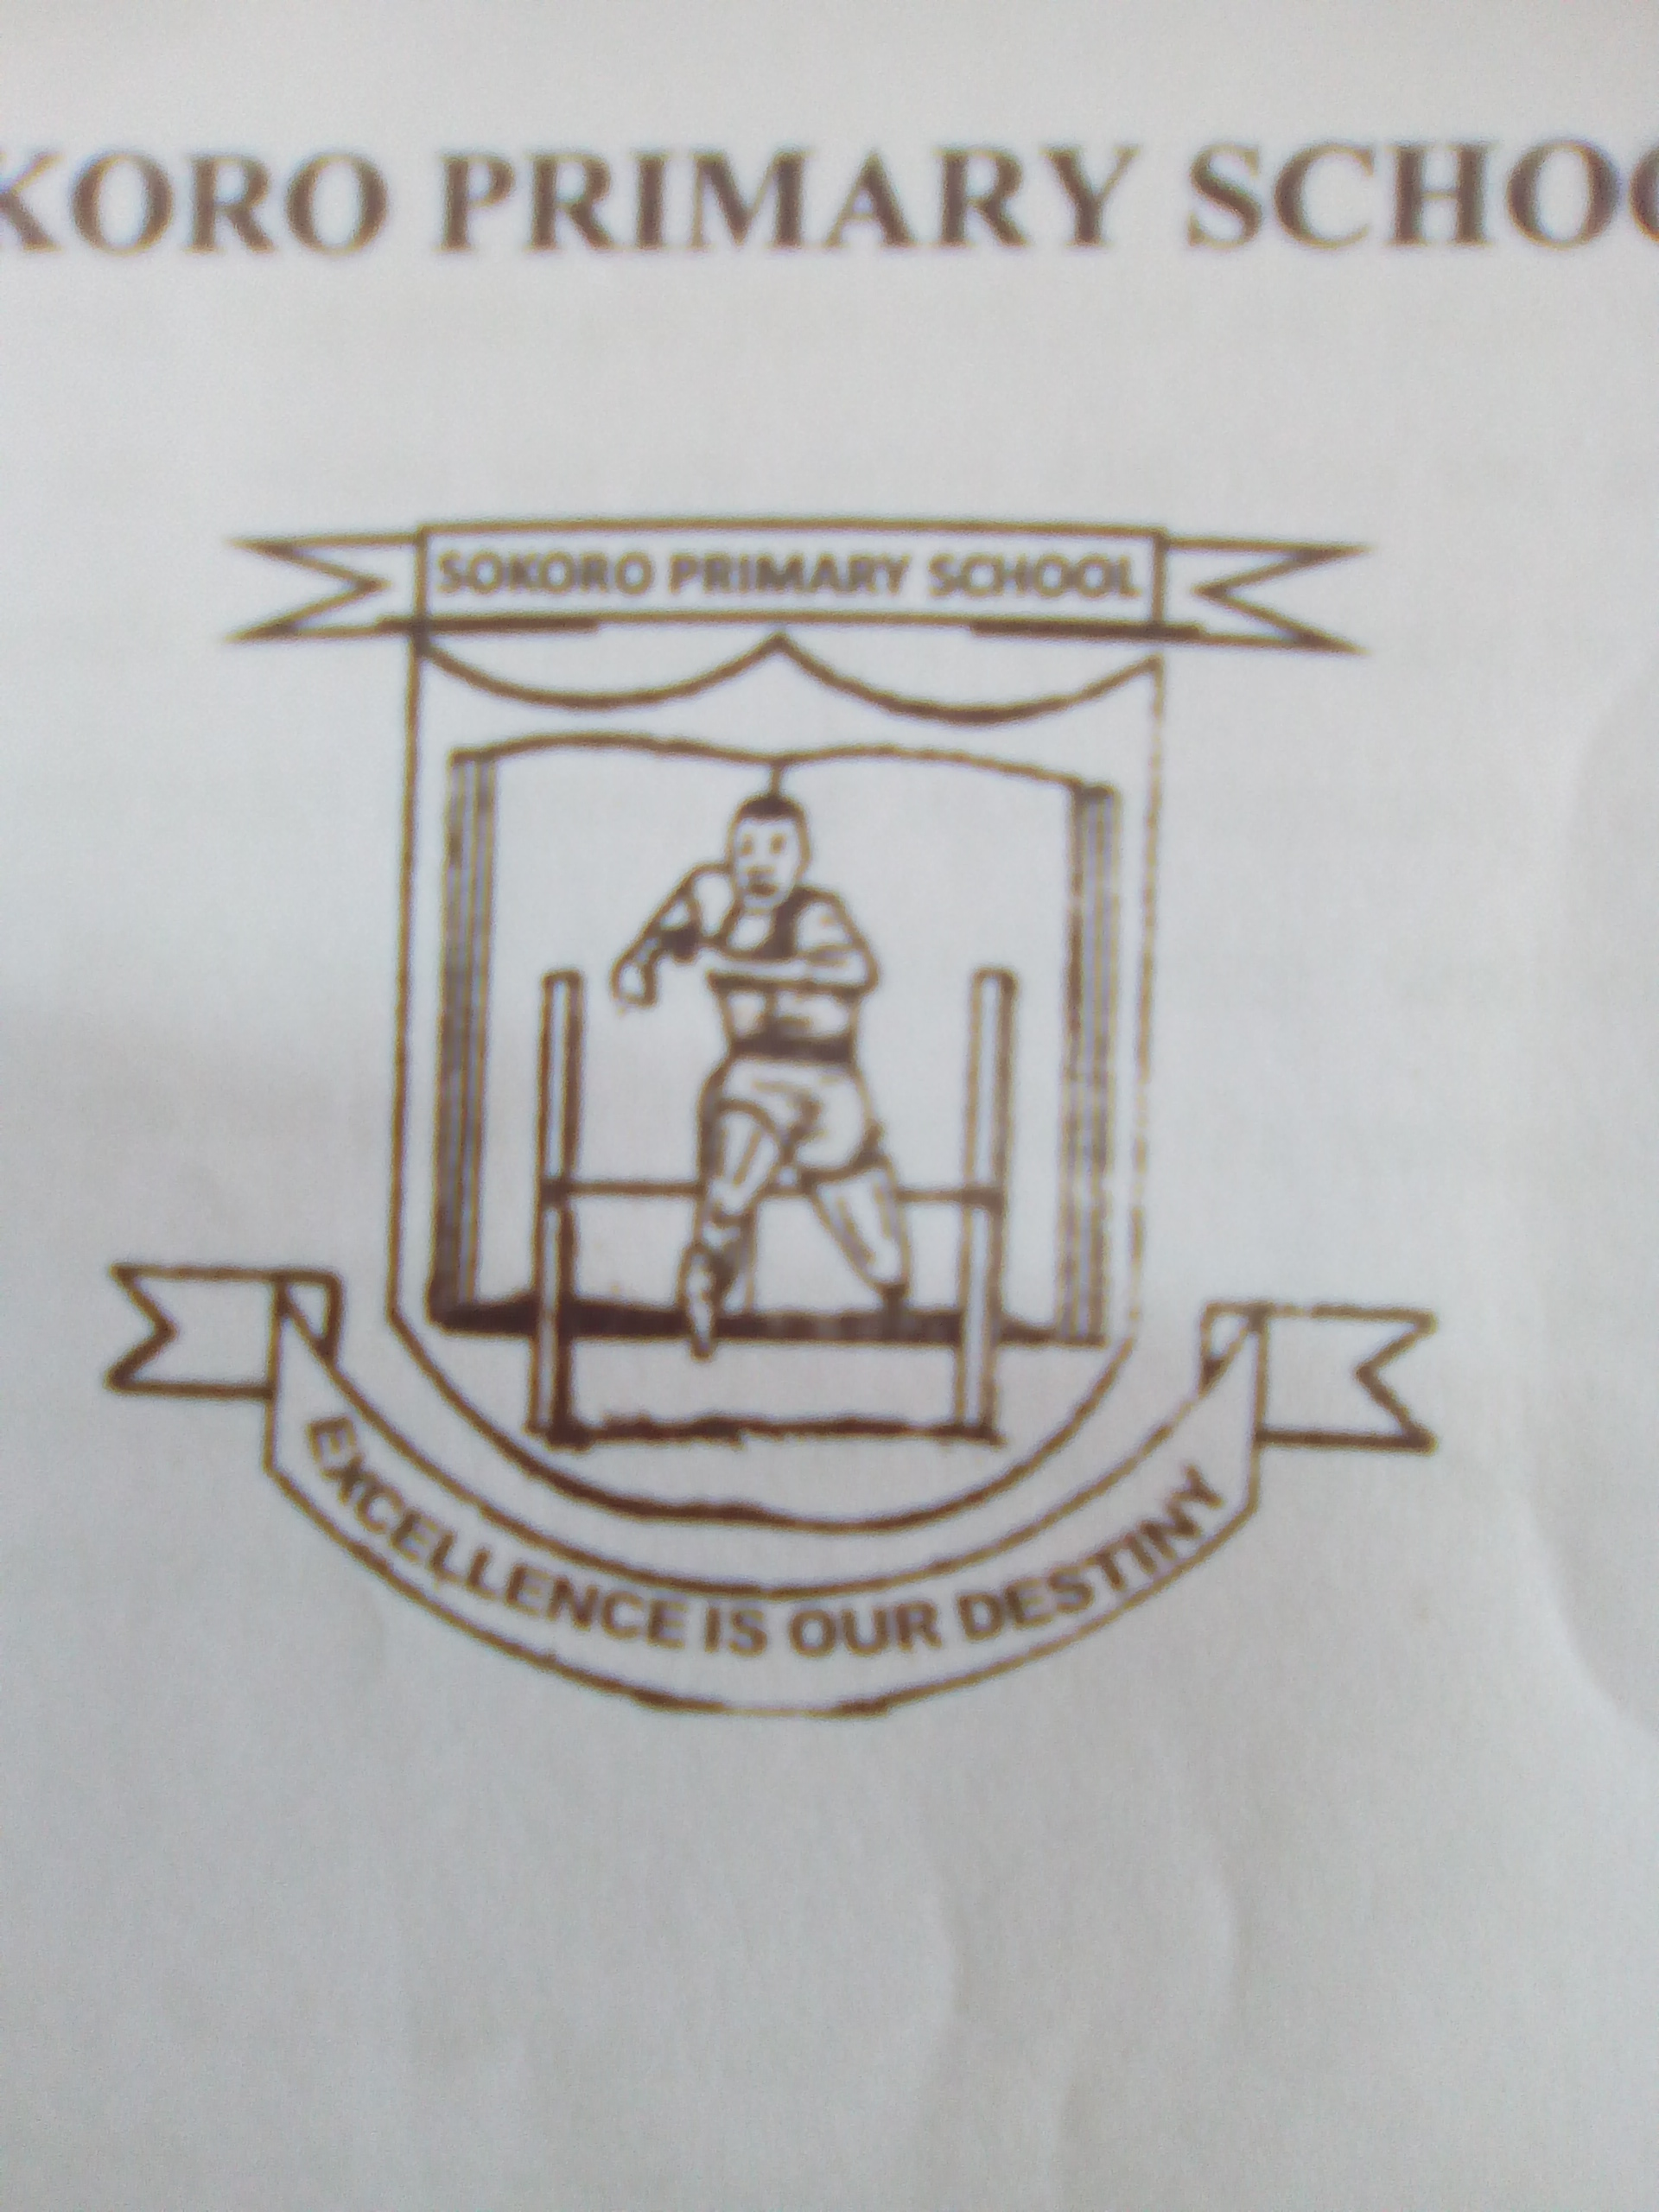 Sokoro Primary School logo